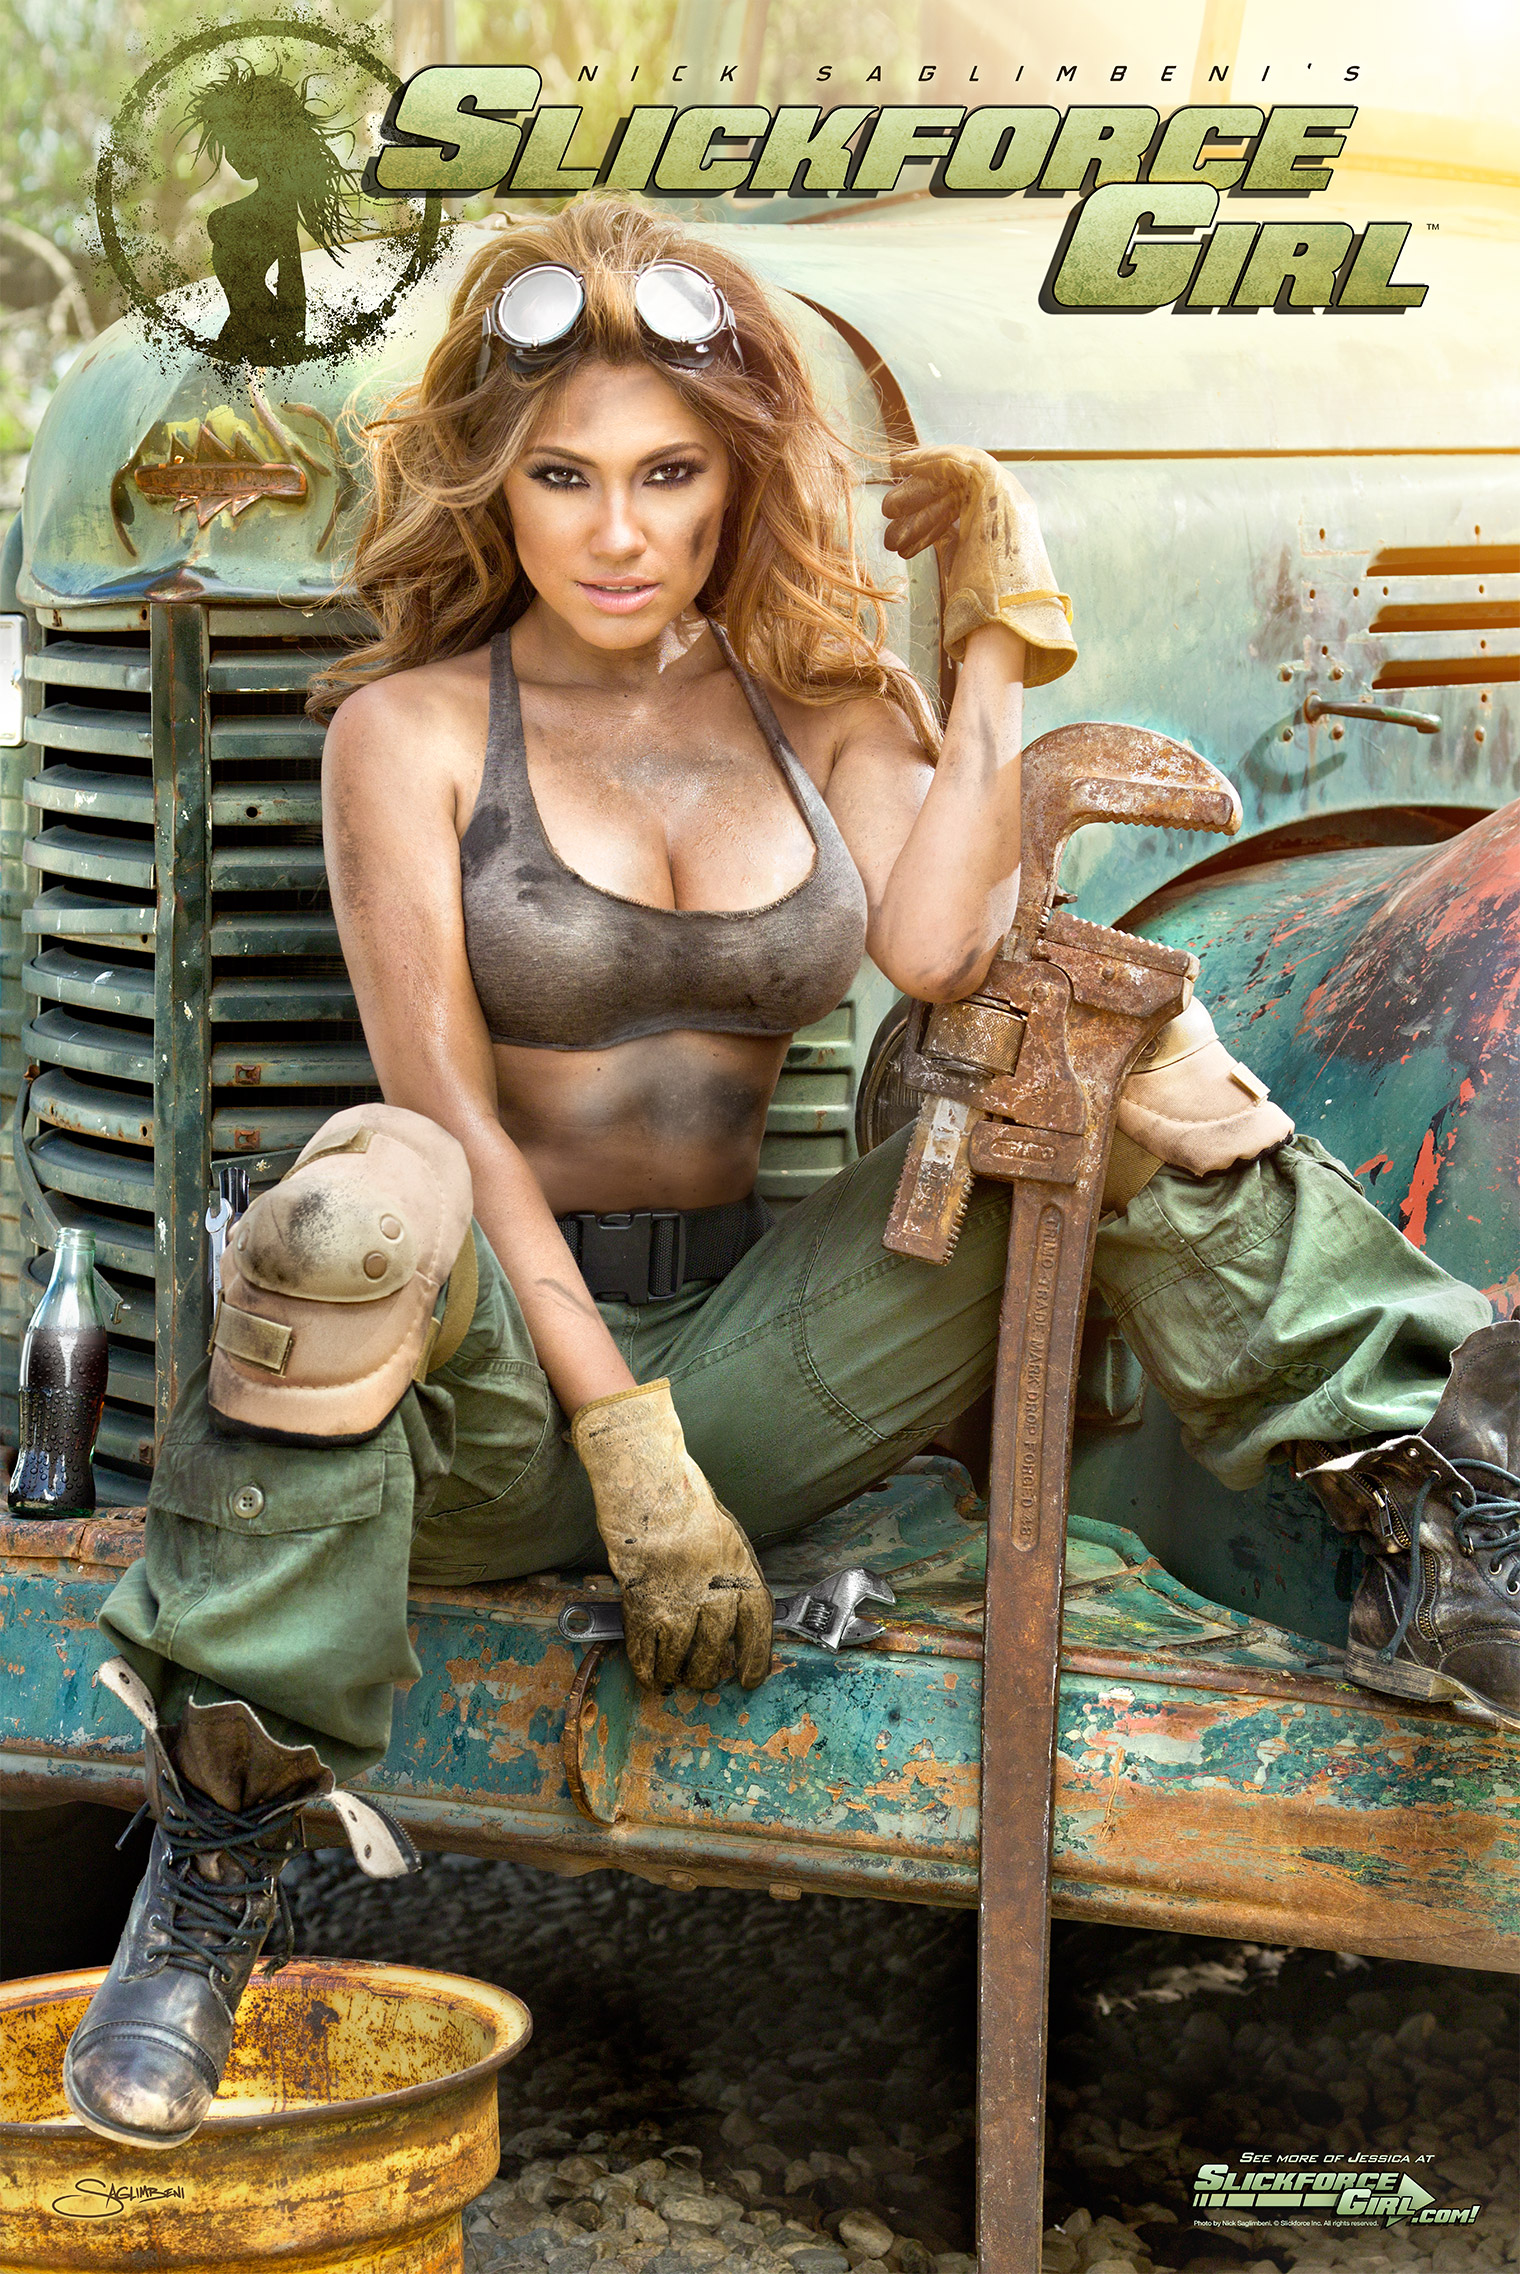 SlickforceGirl-Jessica-Burciaga-Mechanic